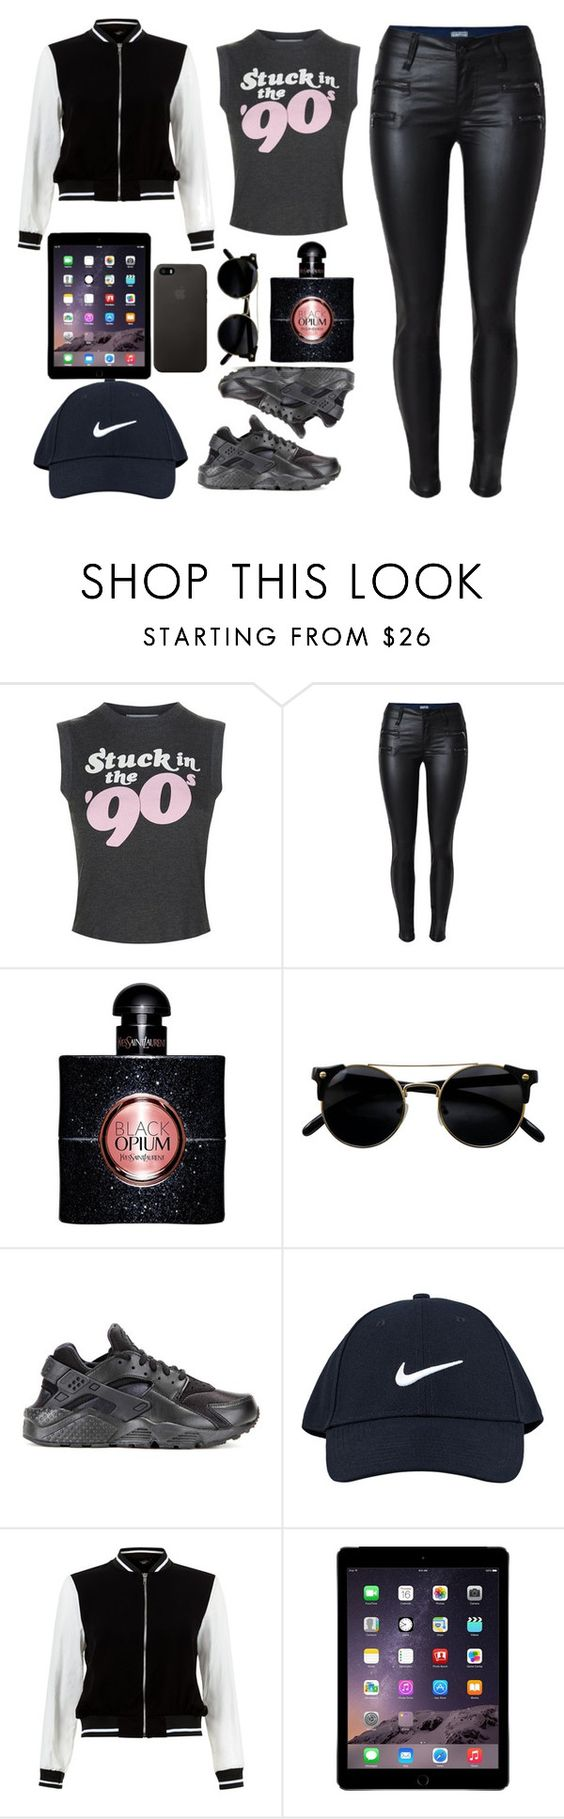 """Untitled #36"" by bonbonkabengele ❤ liked on Polyvore featuring Wildfox, Yves Saint Laurent, NIKE and New Look"